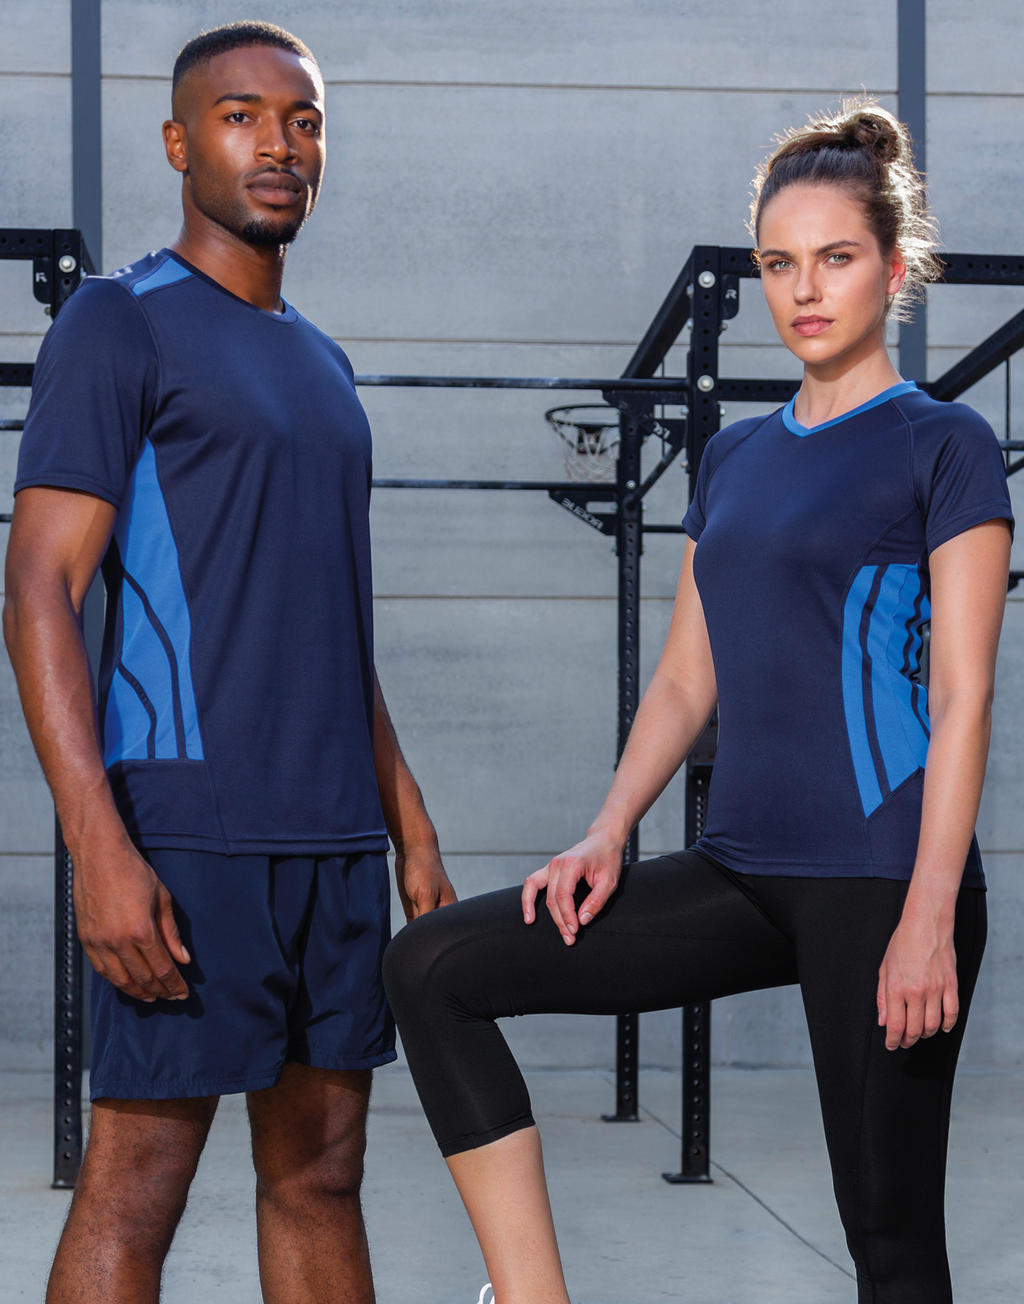 Kustom Kit Regular Fit Cooltex® Training Tee